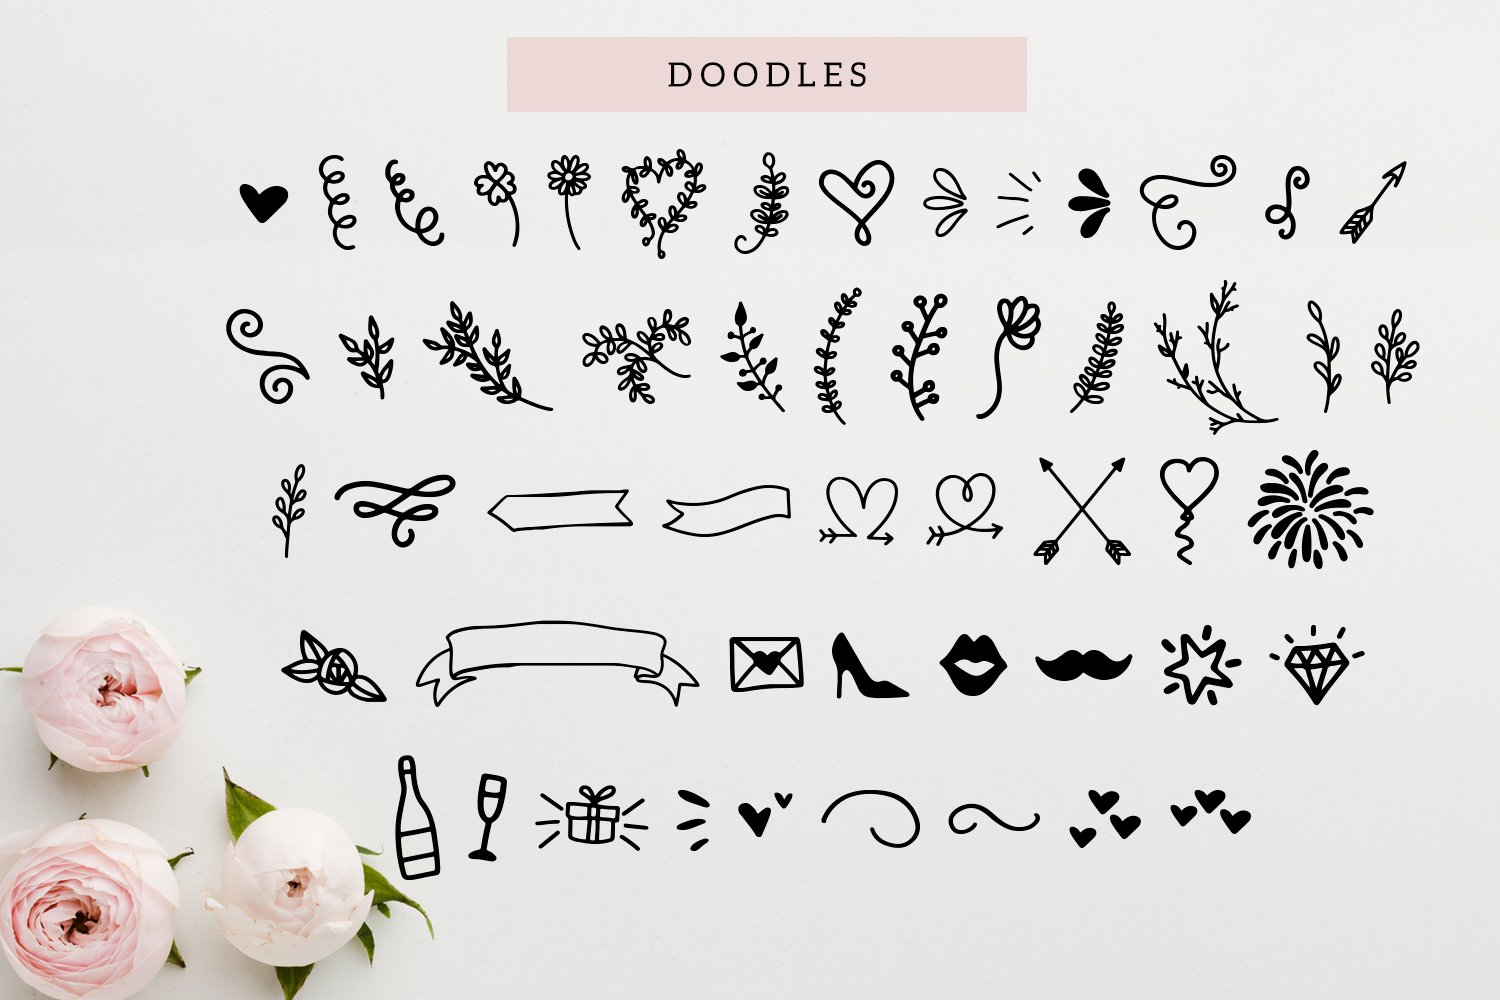 Maid Of Honor - A script font with matching doodles example image 4